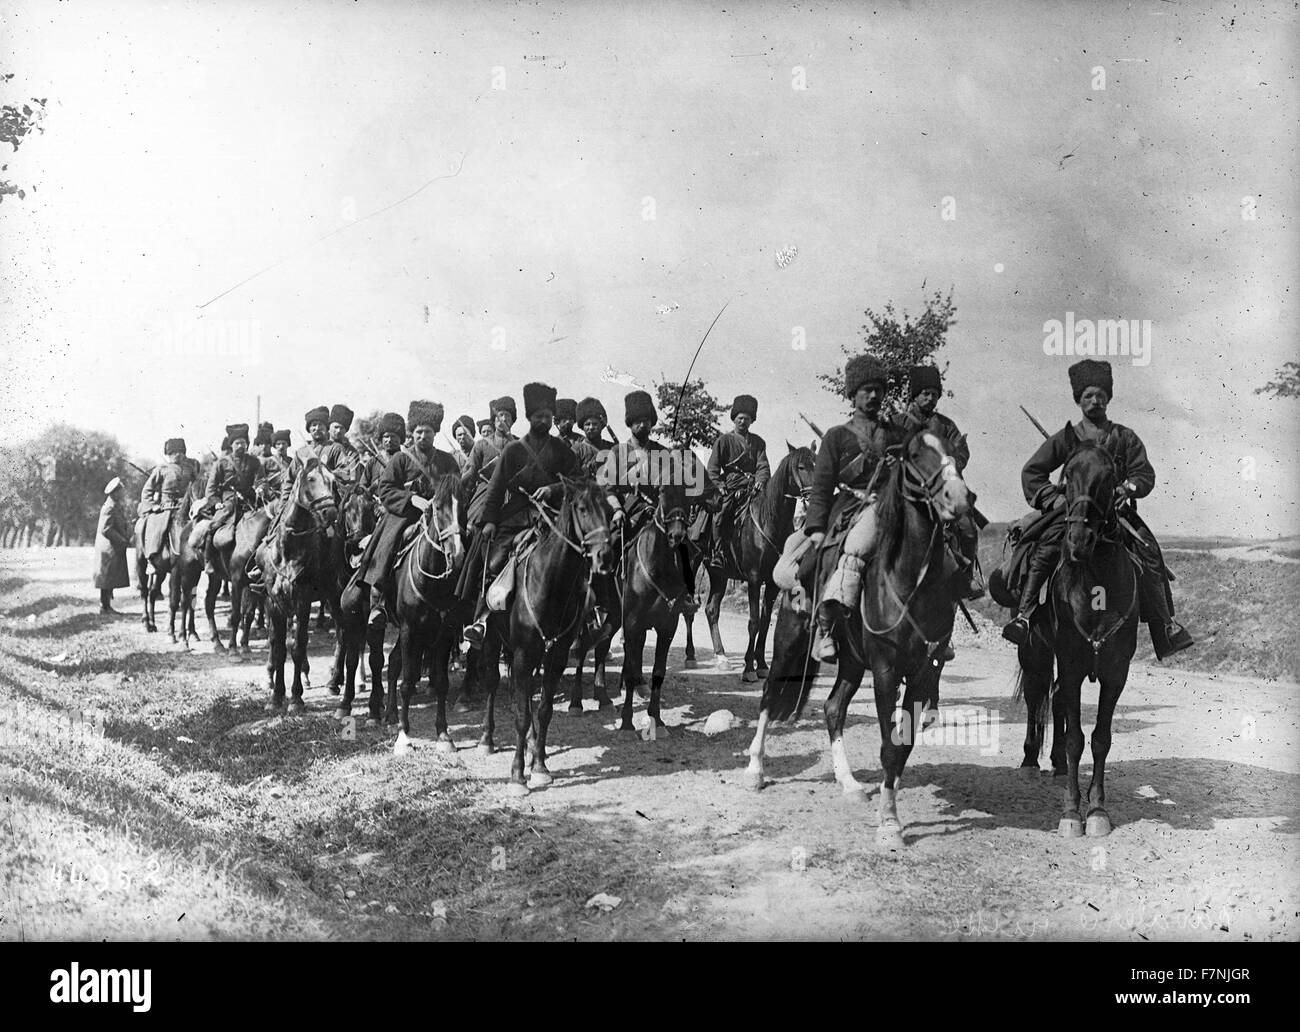 First World War Russian imperial cavalry 1914 - Stock Image